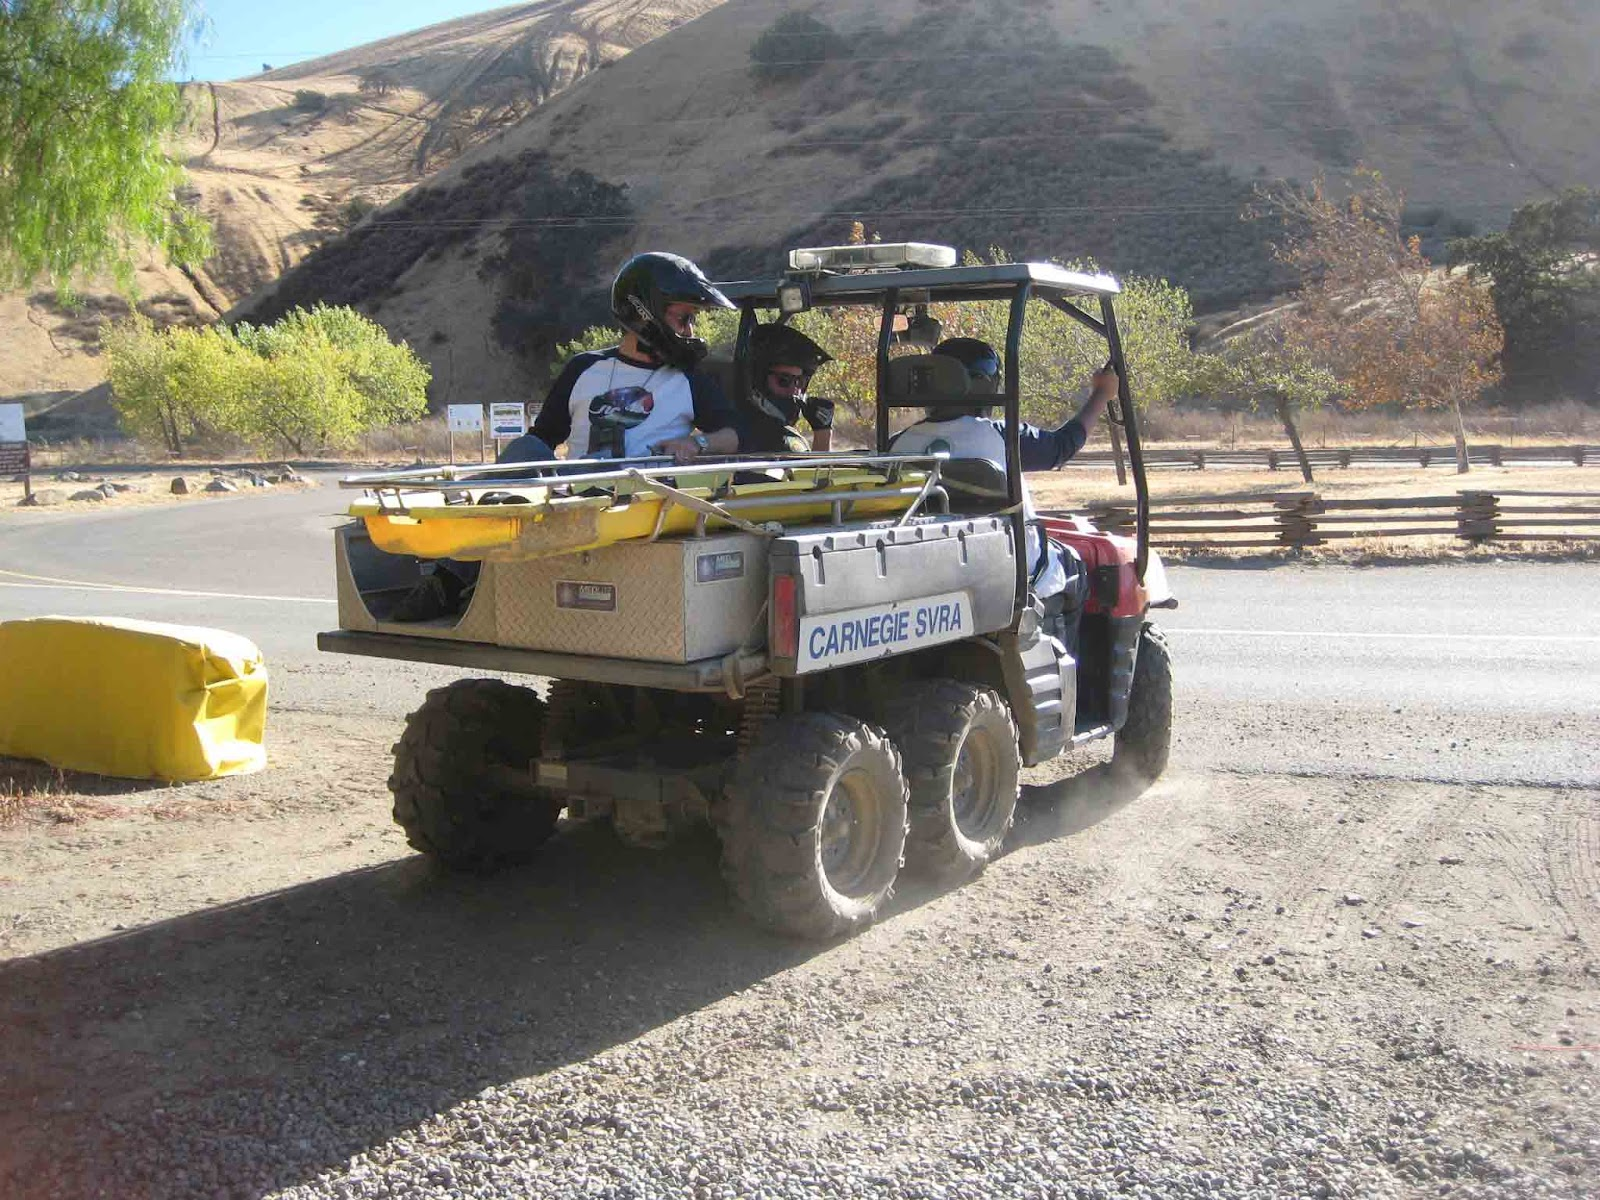 Brandon-off-in-ATV.jpg